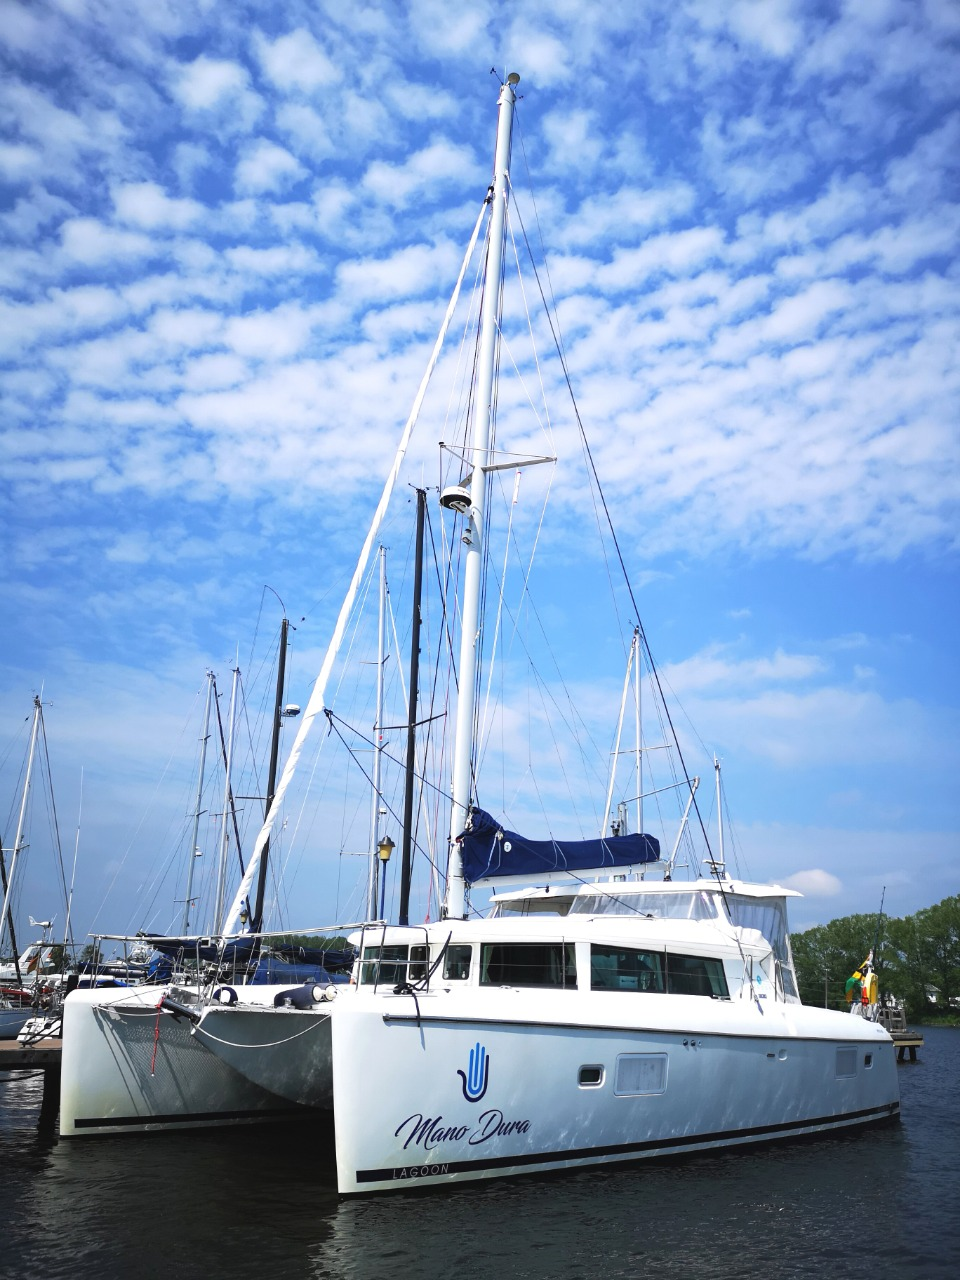 Latest Listings & Recent Price Cuts | Video | Catamarans For Charter in USVI